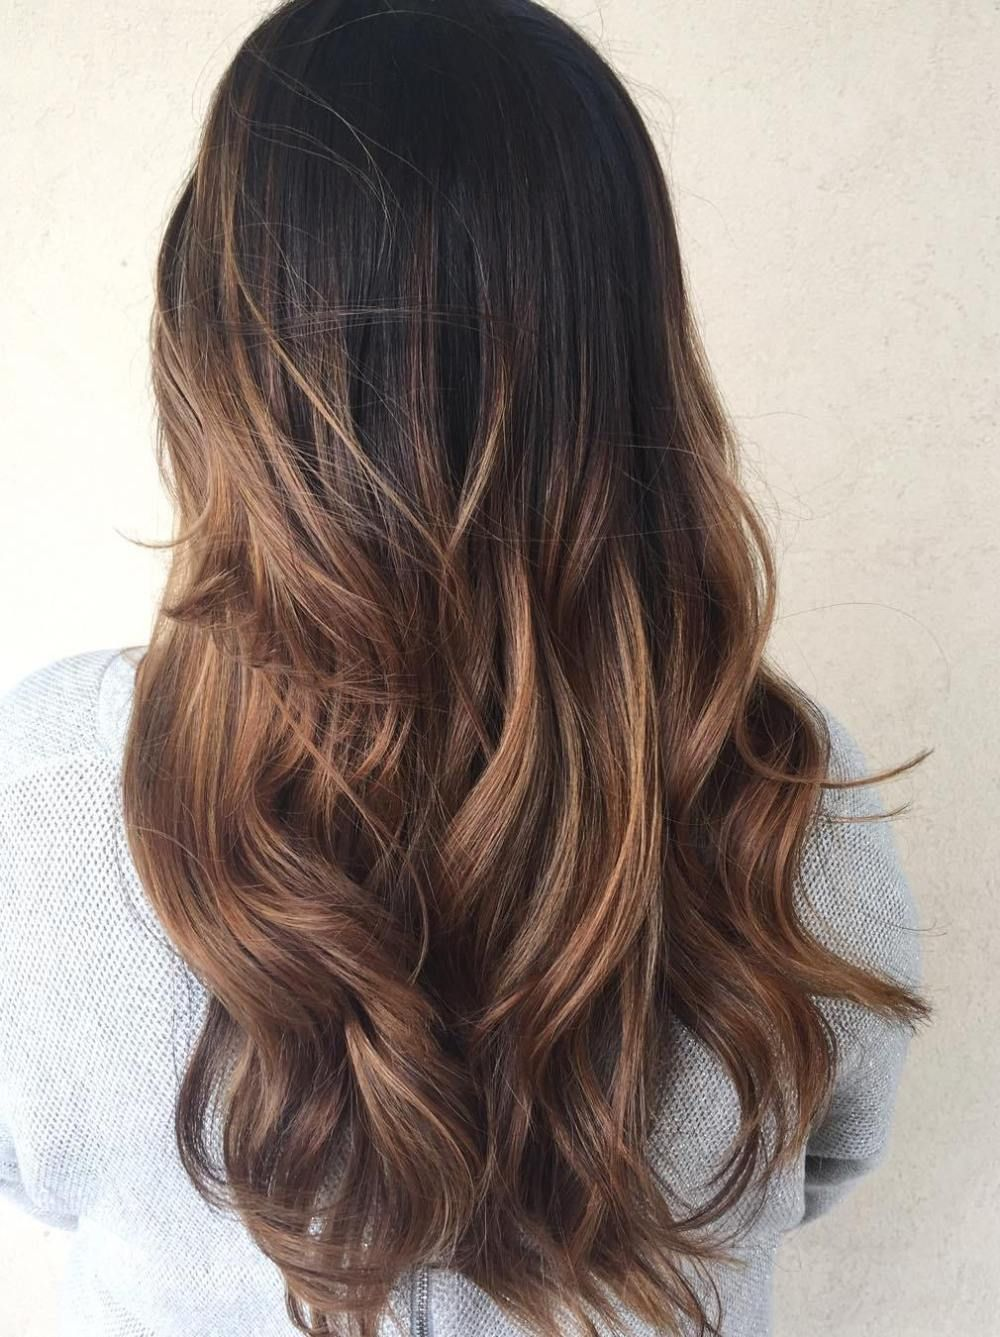 50 Chocolate Brown Hair Color Ideas for Brunettes | Chocolate ...